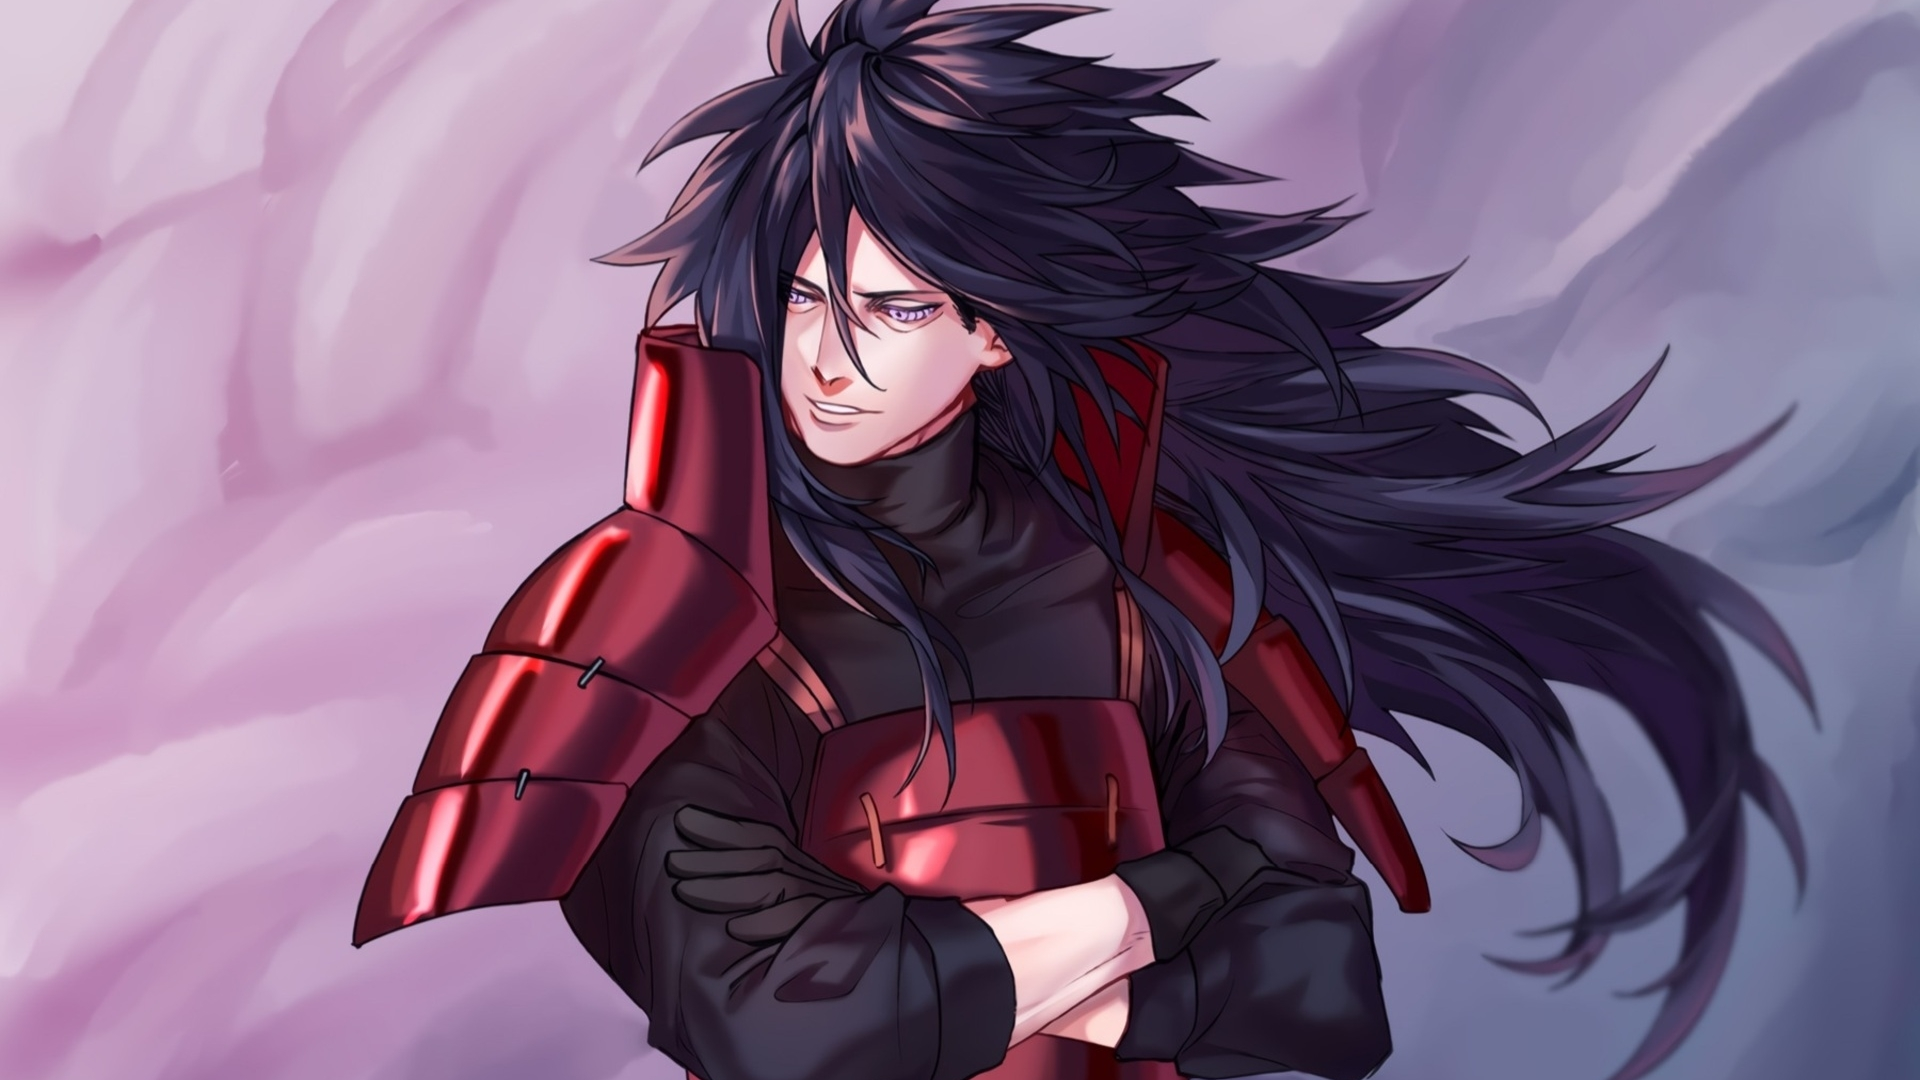 1920x1080 Madara Uchiha Cool Artwork 1080p Laptop Full Hd Wallpaper Hd Anime 4k Wallpapers Images Photos And Background